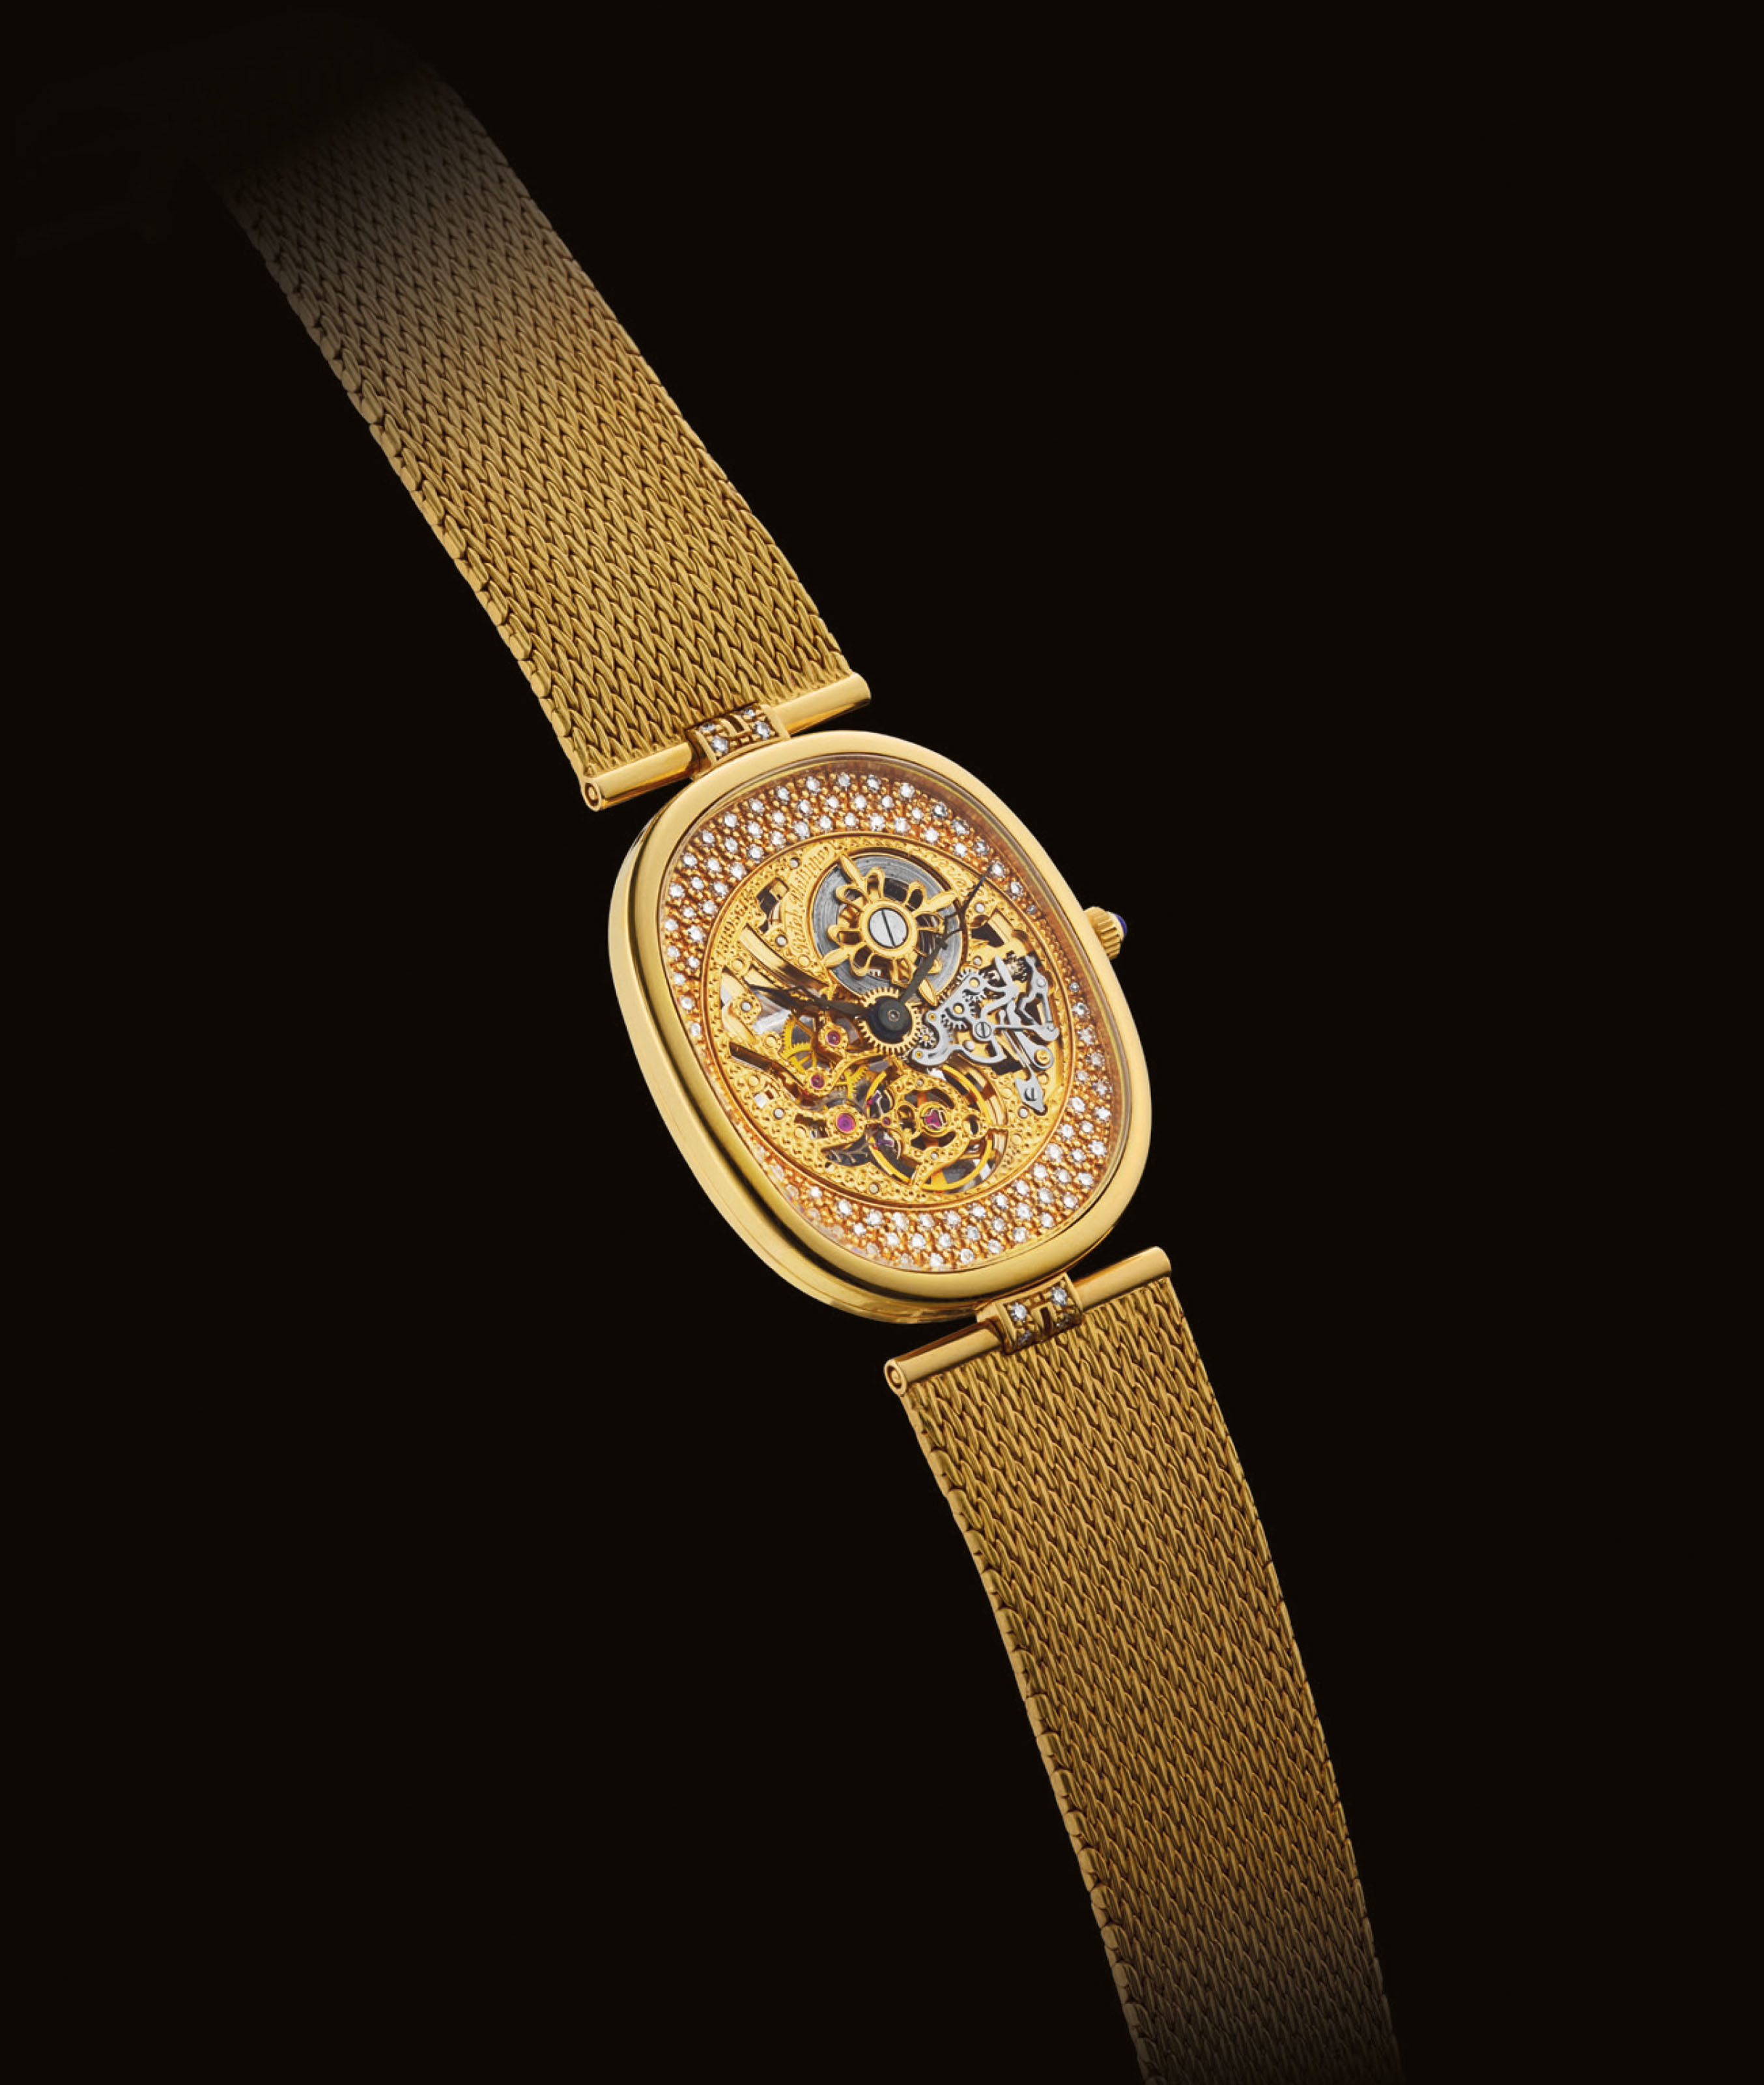 PATEK PHILIPPE. A FINE AND RARE 18K GOLD AND DIAMOND-SET CUSHION-SHAPED SKELETONISED WRISTWATCH WITH BRACELET